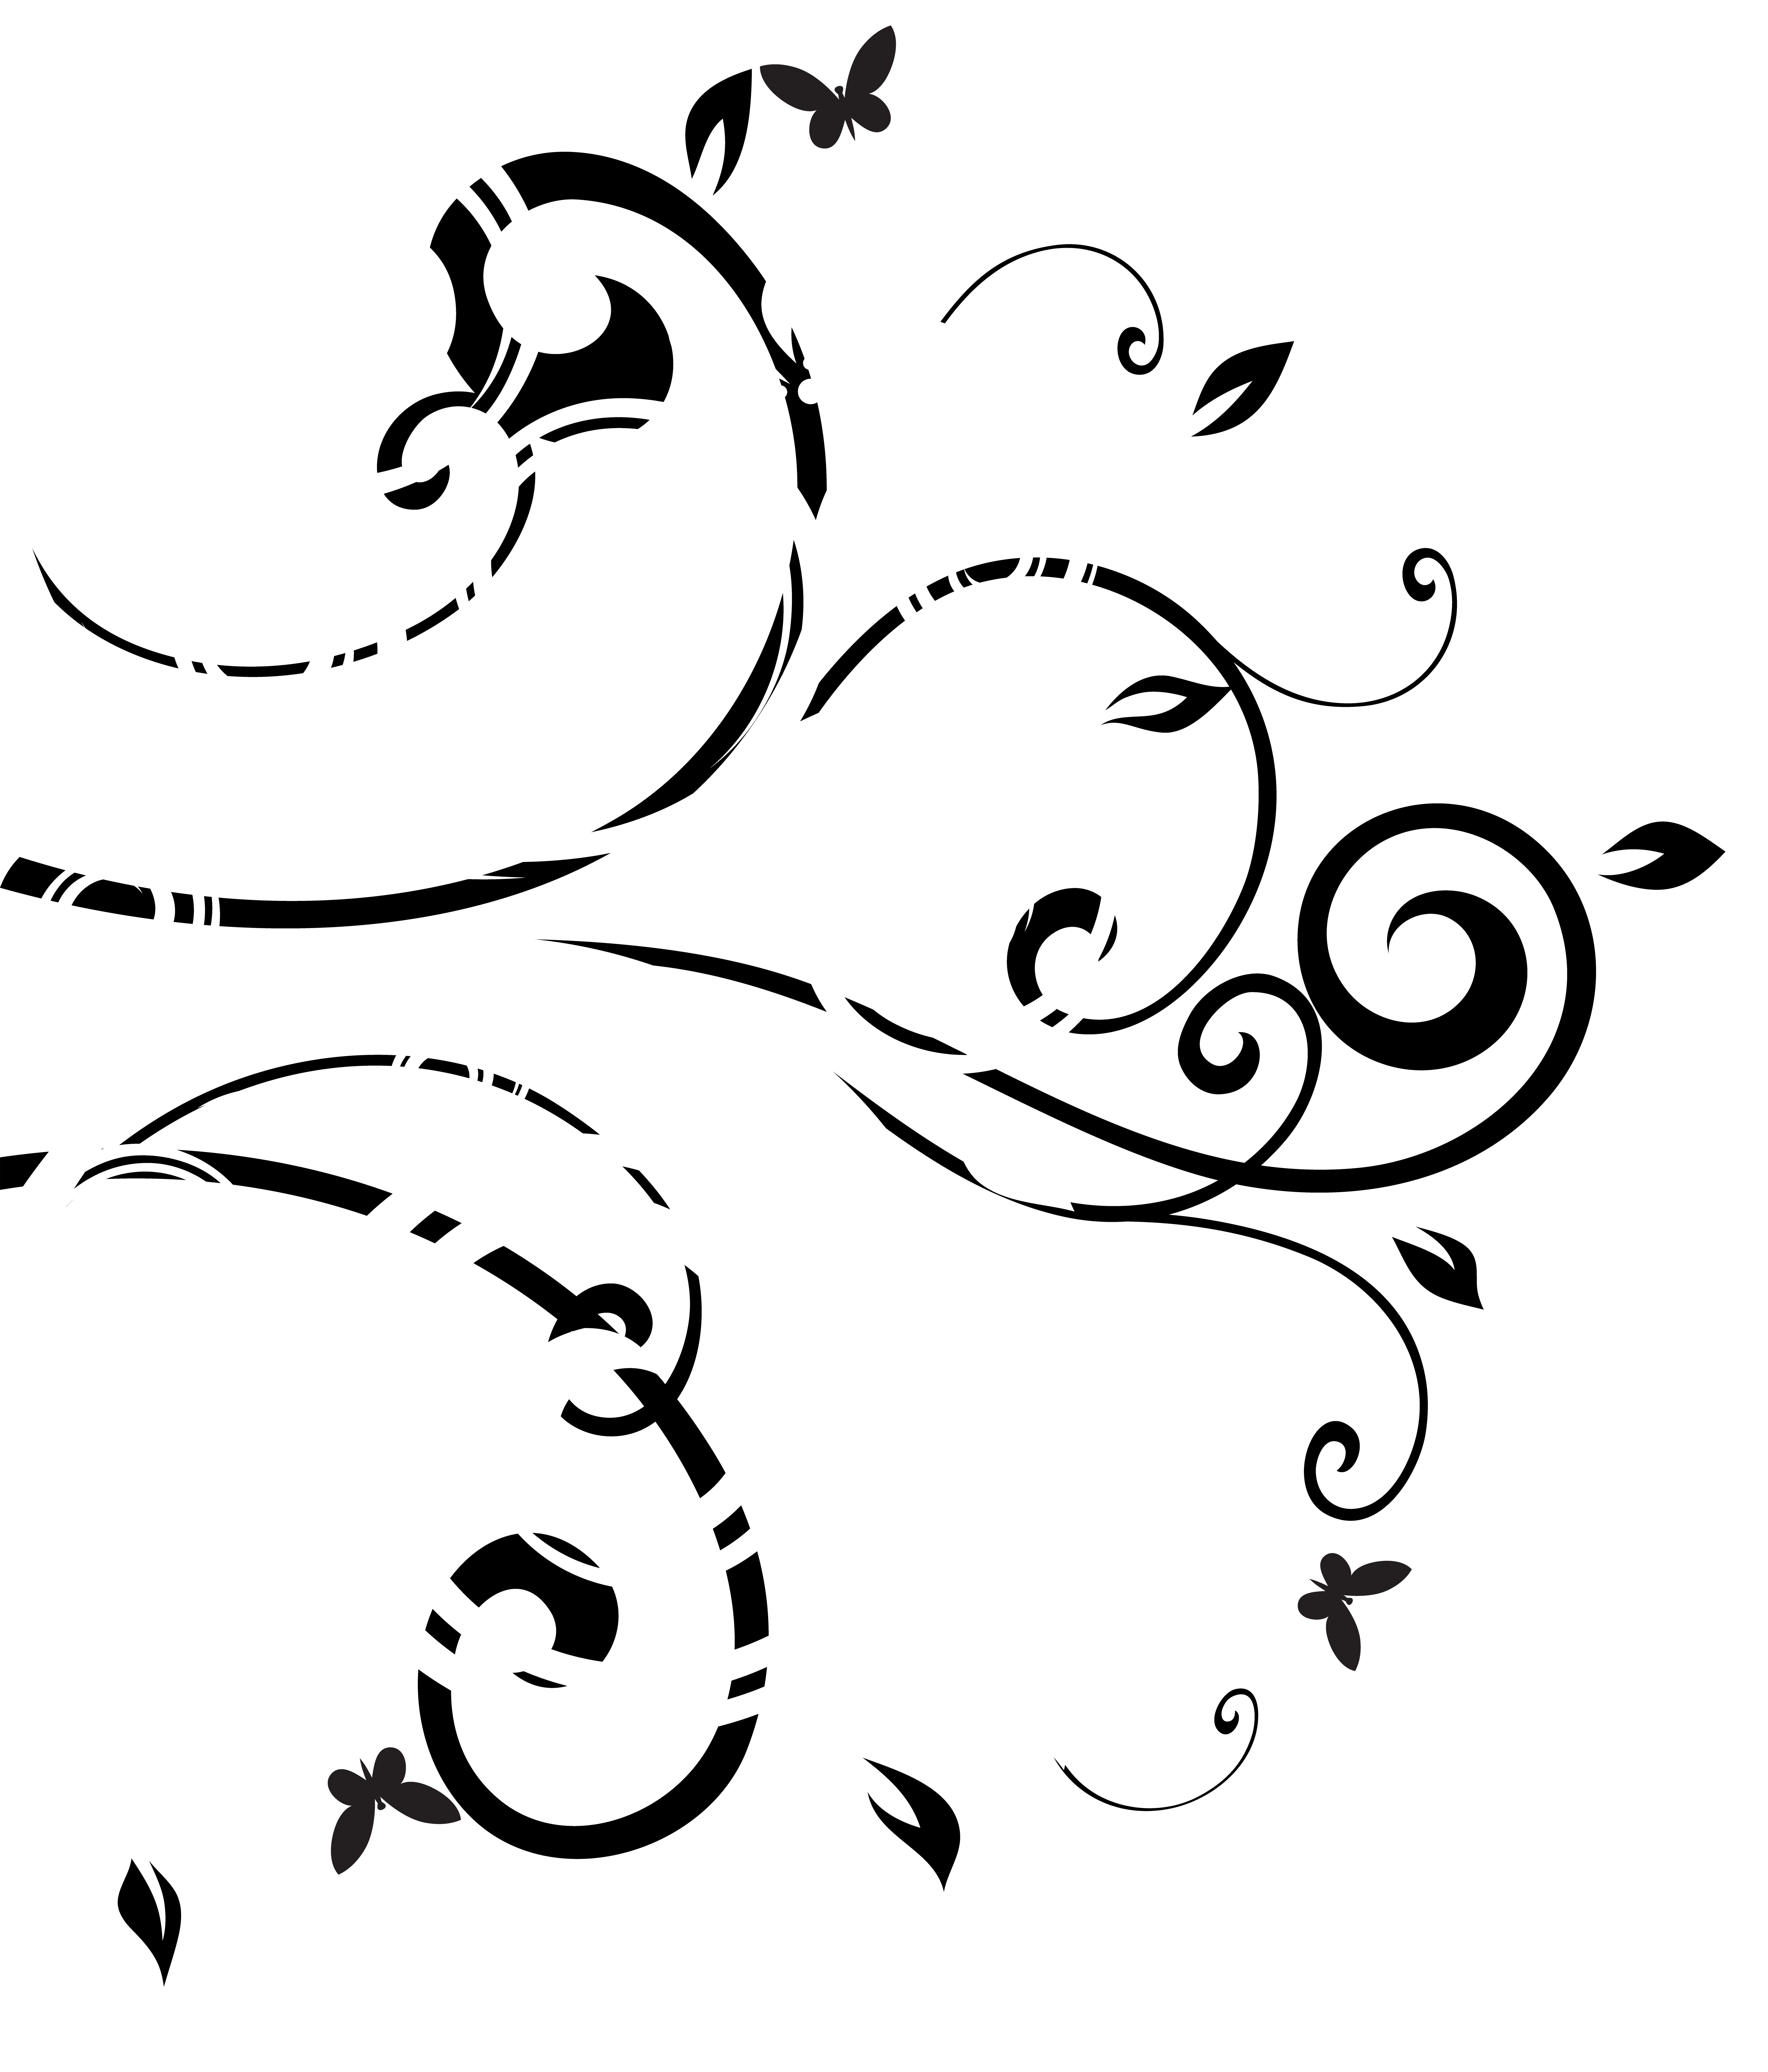 Decoration clipart black and white jpg freeuse library Black White Decor PNG Clip Art Image | Gallery Yopriceville - High ... jpg freeuse library